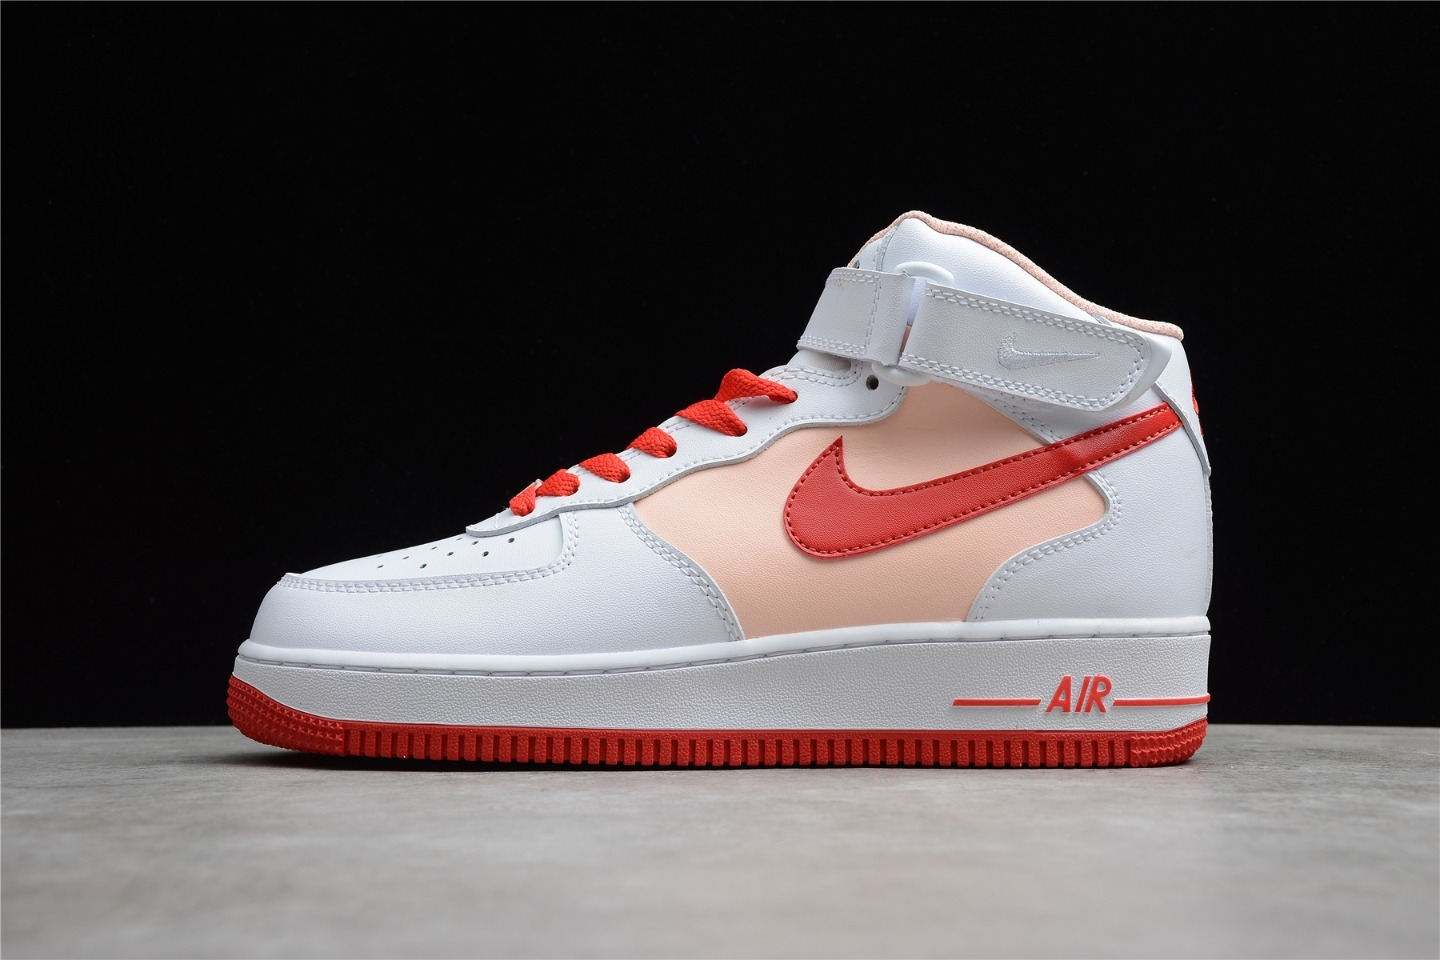 2021 Hot Sale Nike Air Force 1 07 Mid White Red Outlet Left CD0884-123